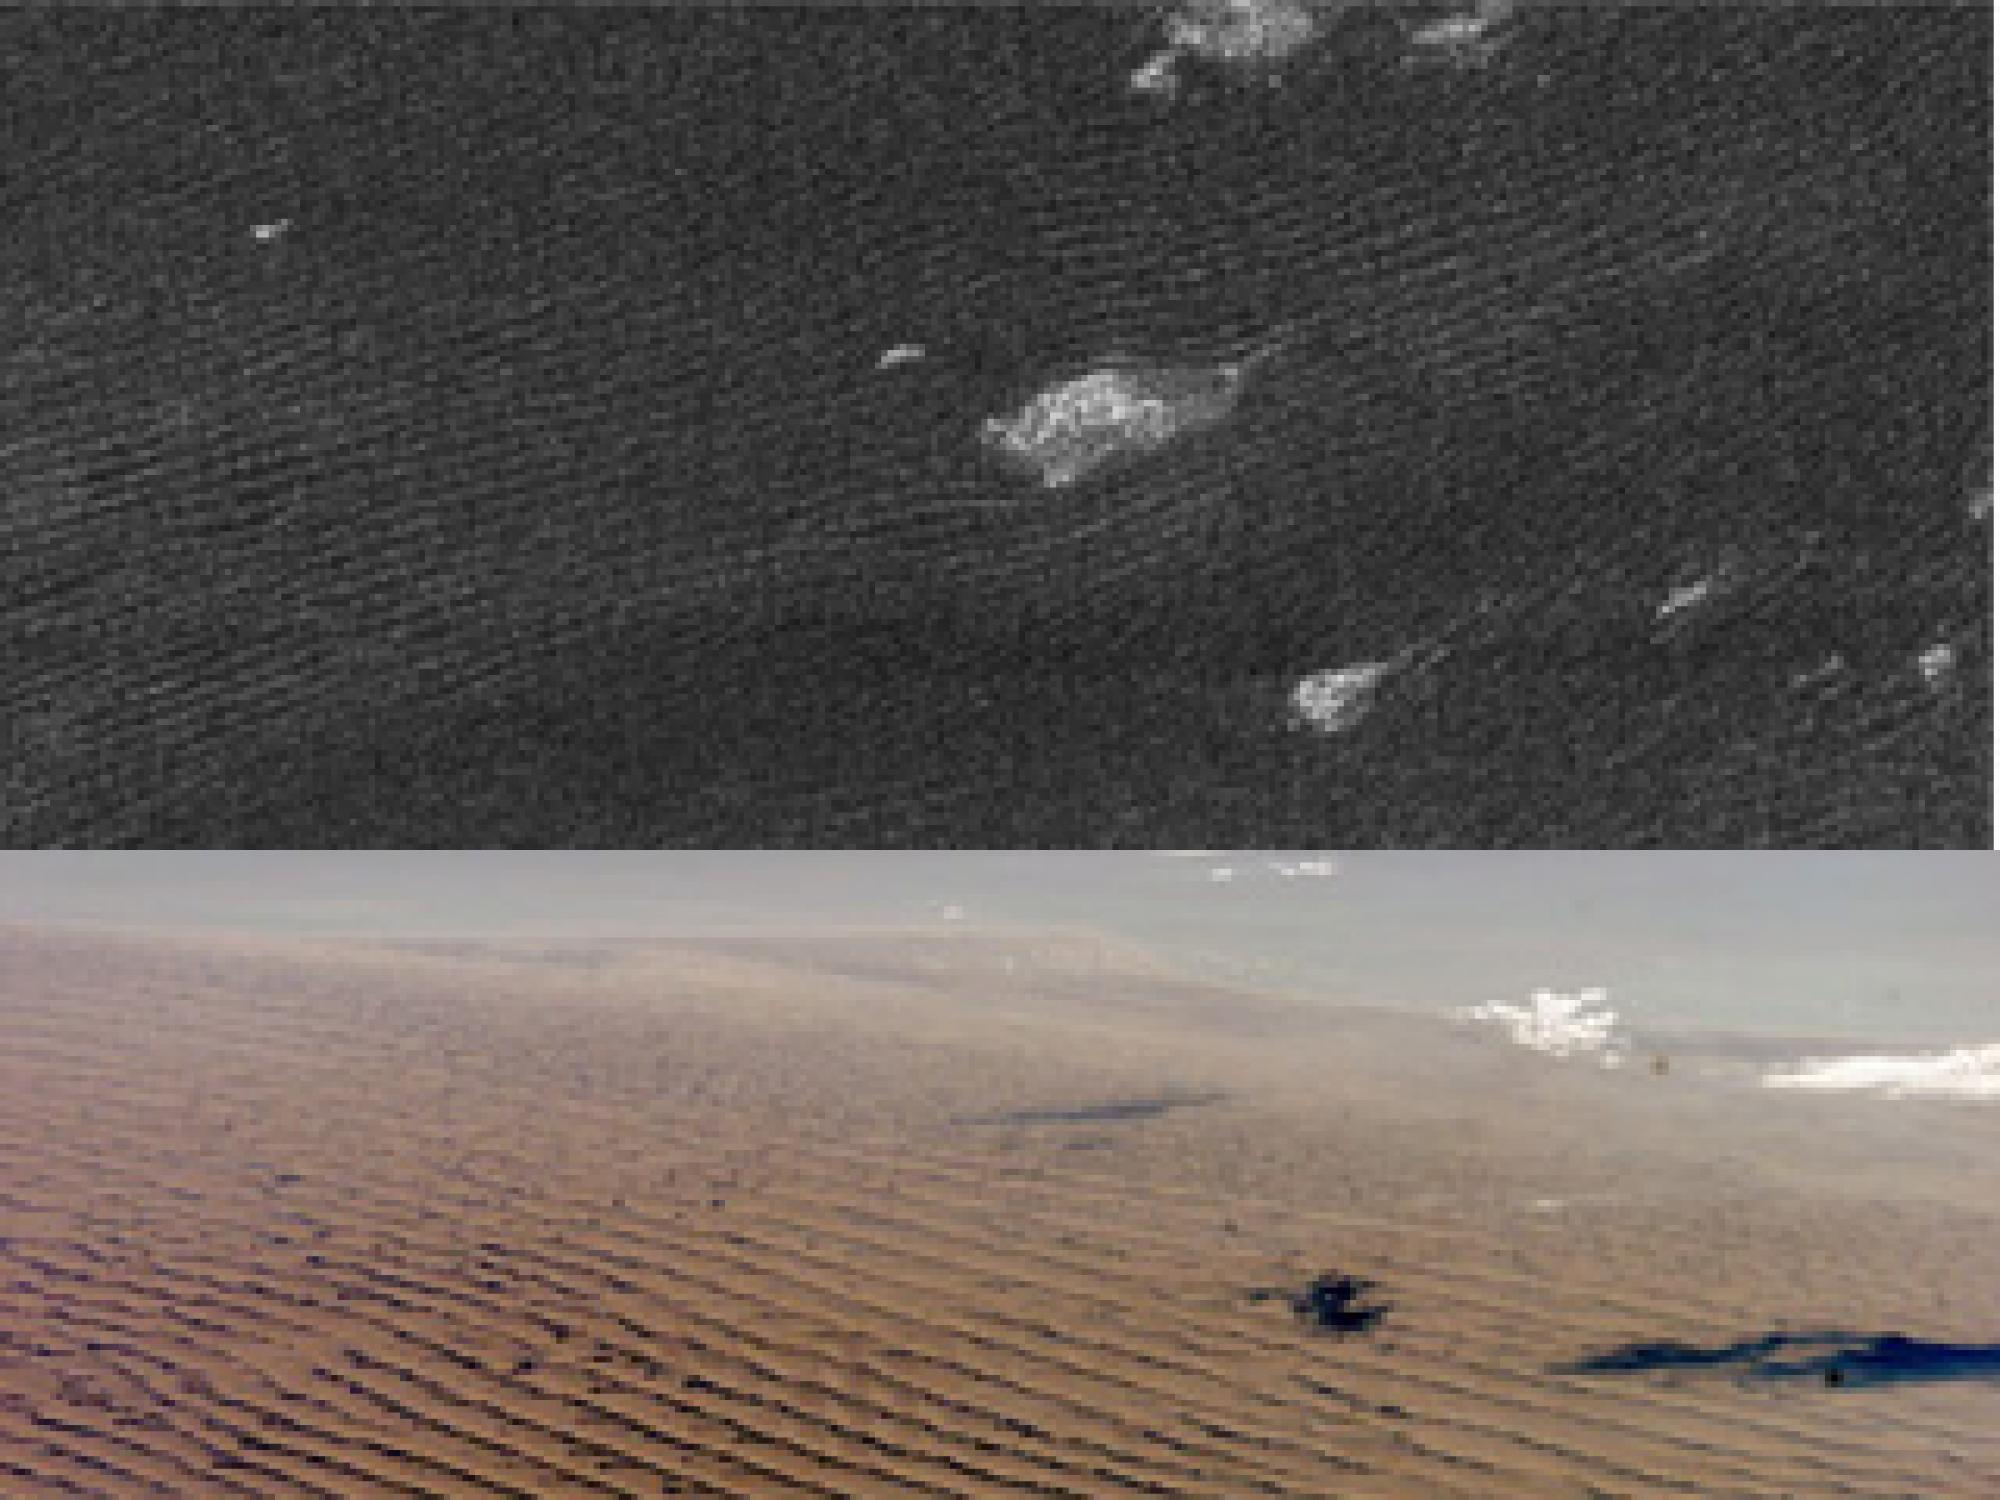 Cassini radar sees sand dunes on Saturn's giant moon Titan  that are sculpted like Namibian sand dunes on Earth . The bright features in the upper radar photo are not clouds but topographic features among the dunes.